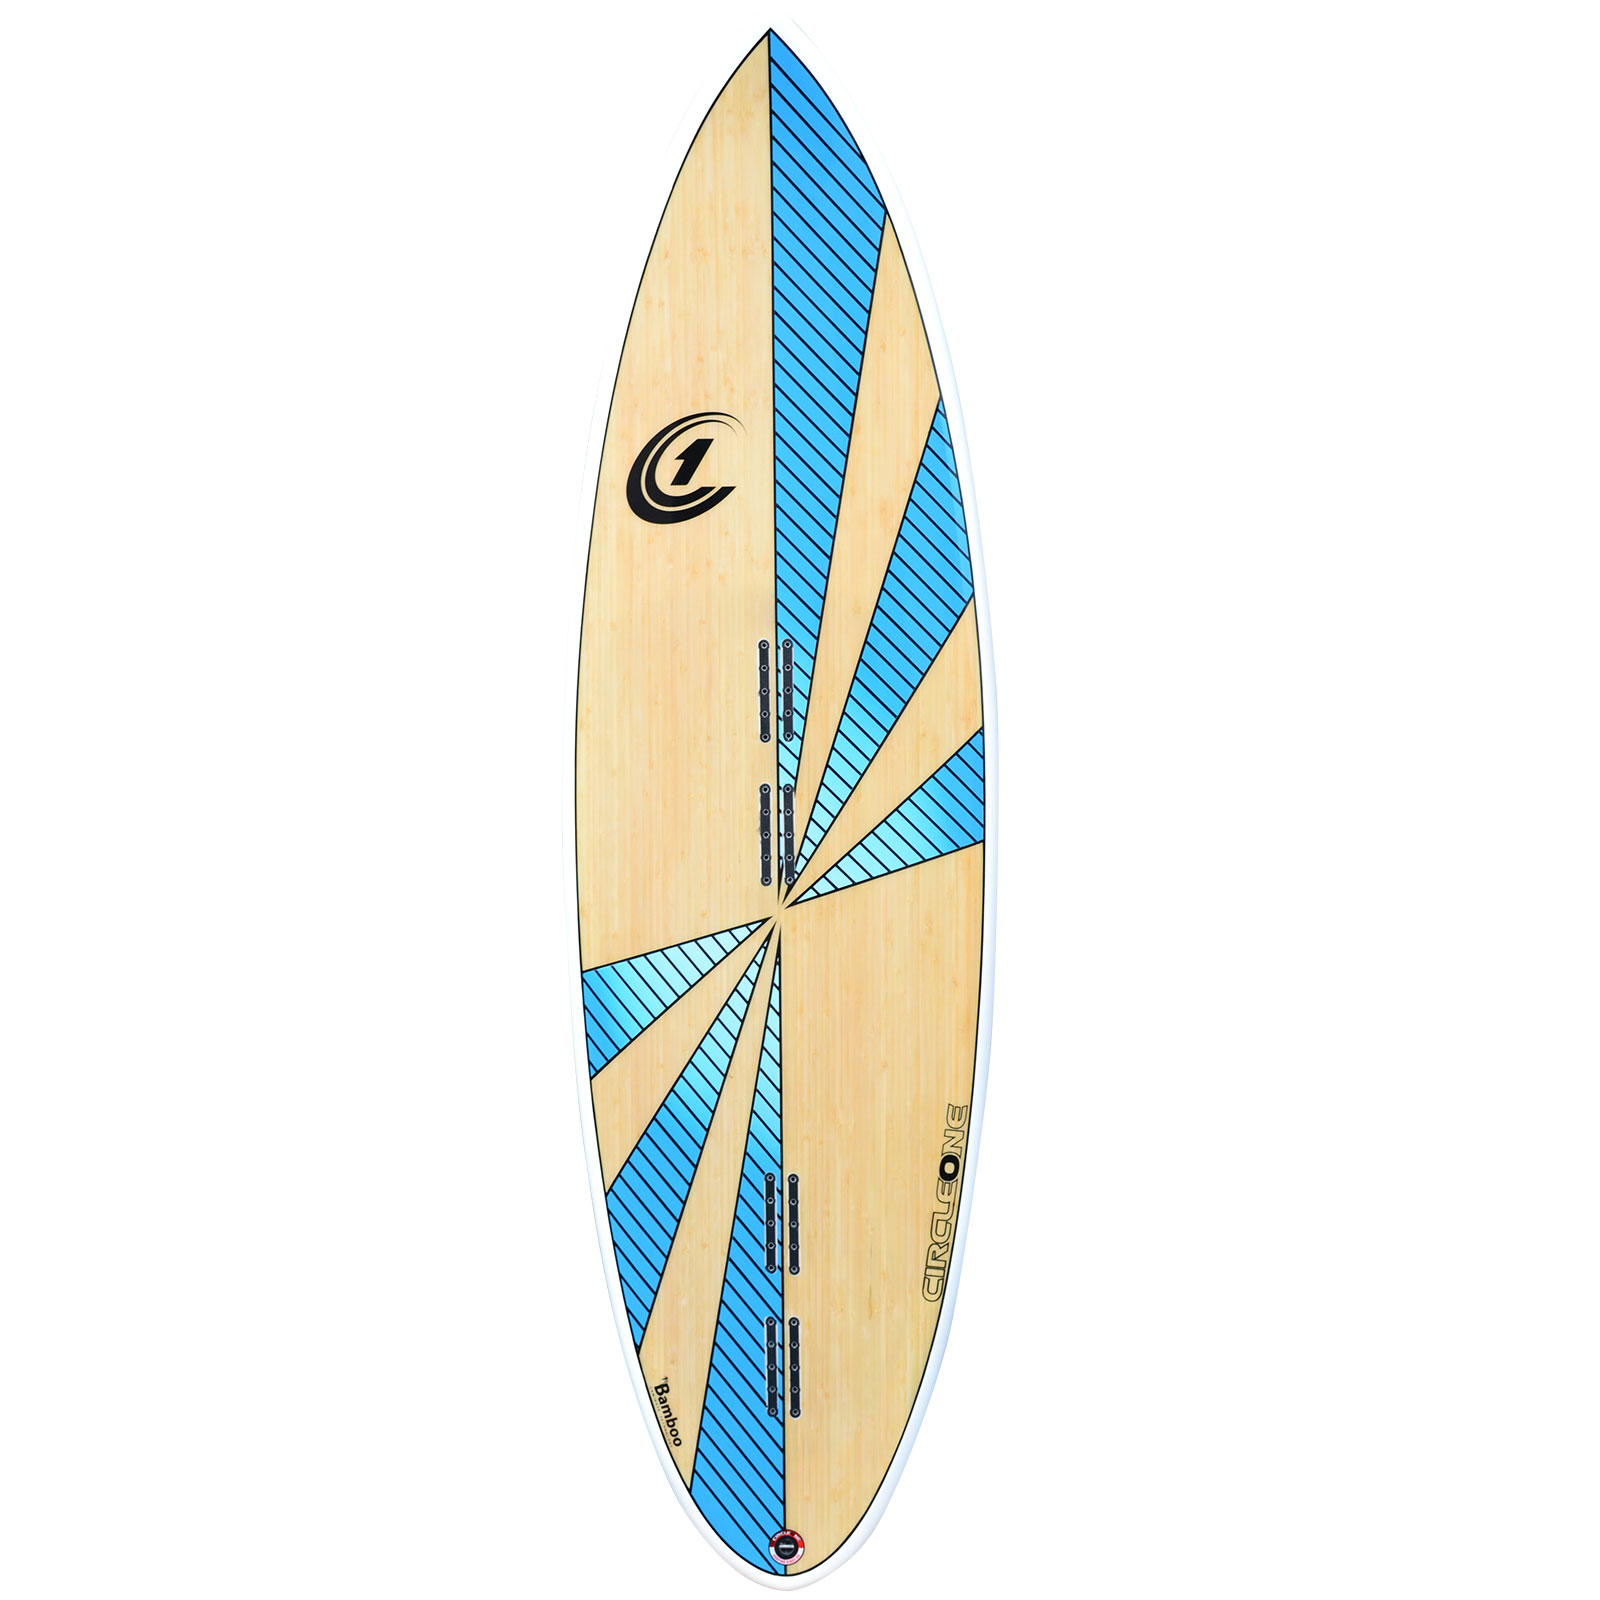 5ft-8inch-Round-Tail-Kiteboard-Blue